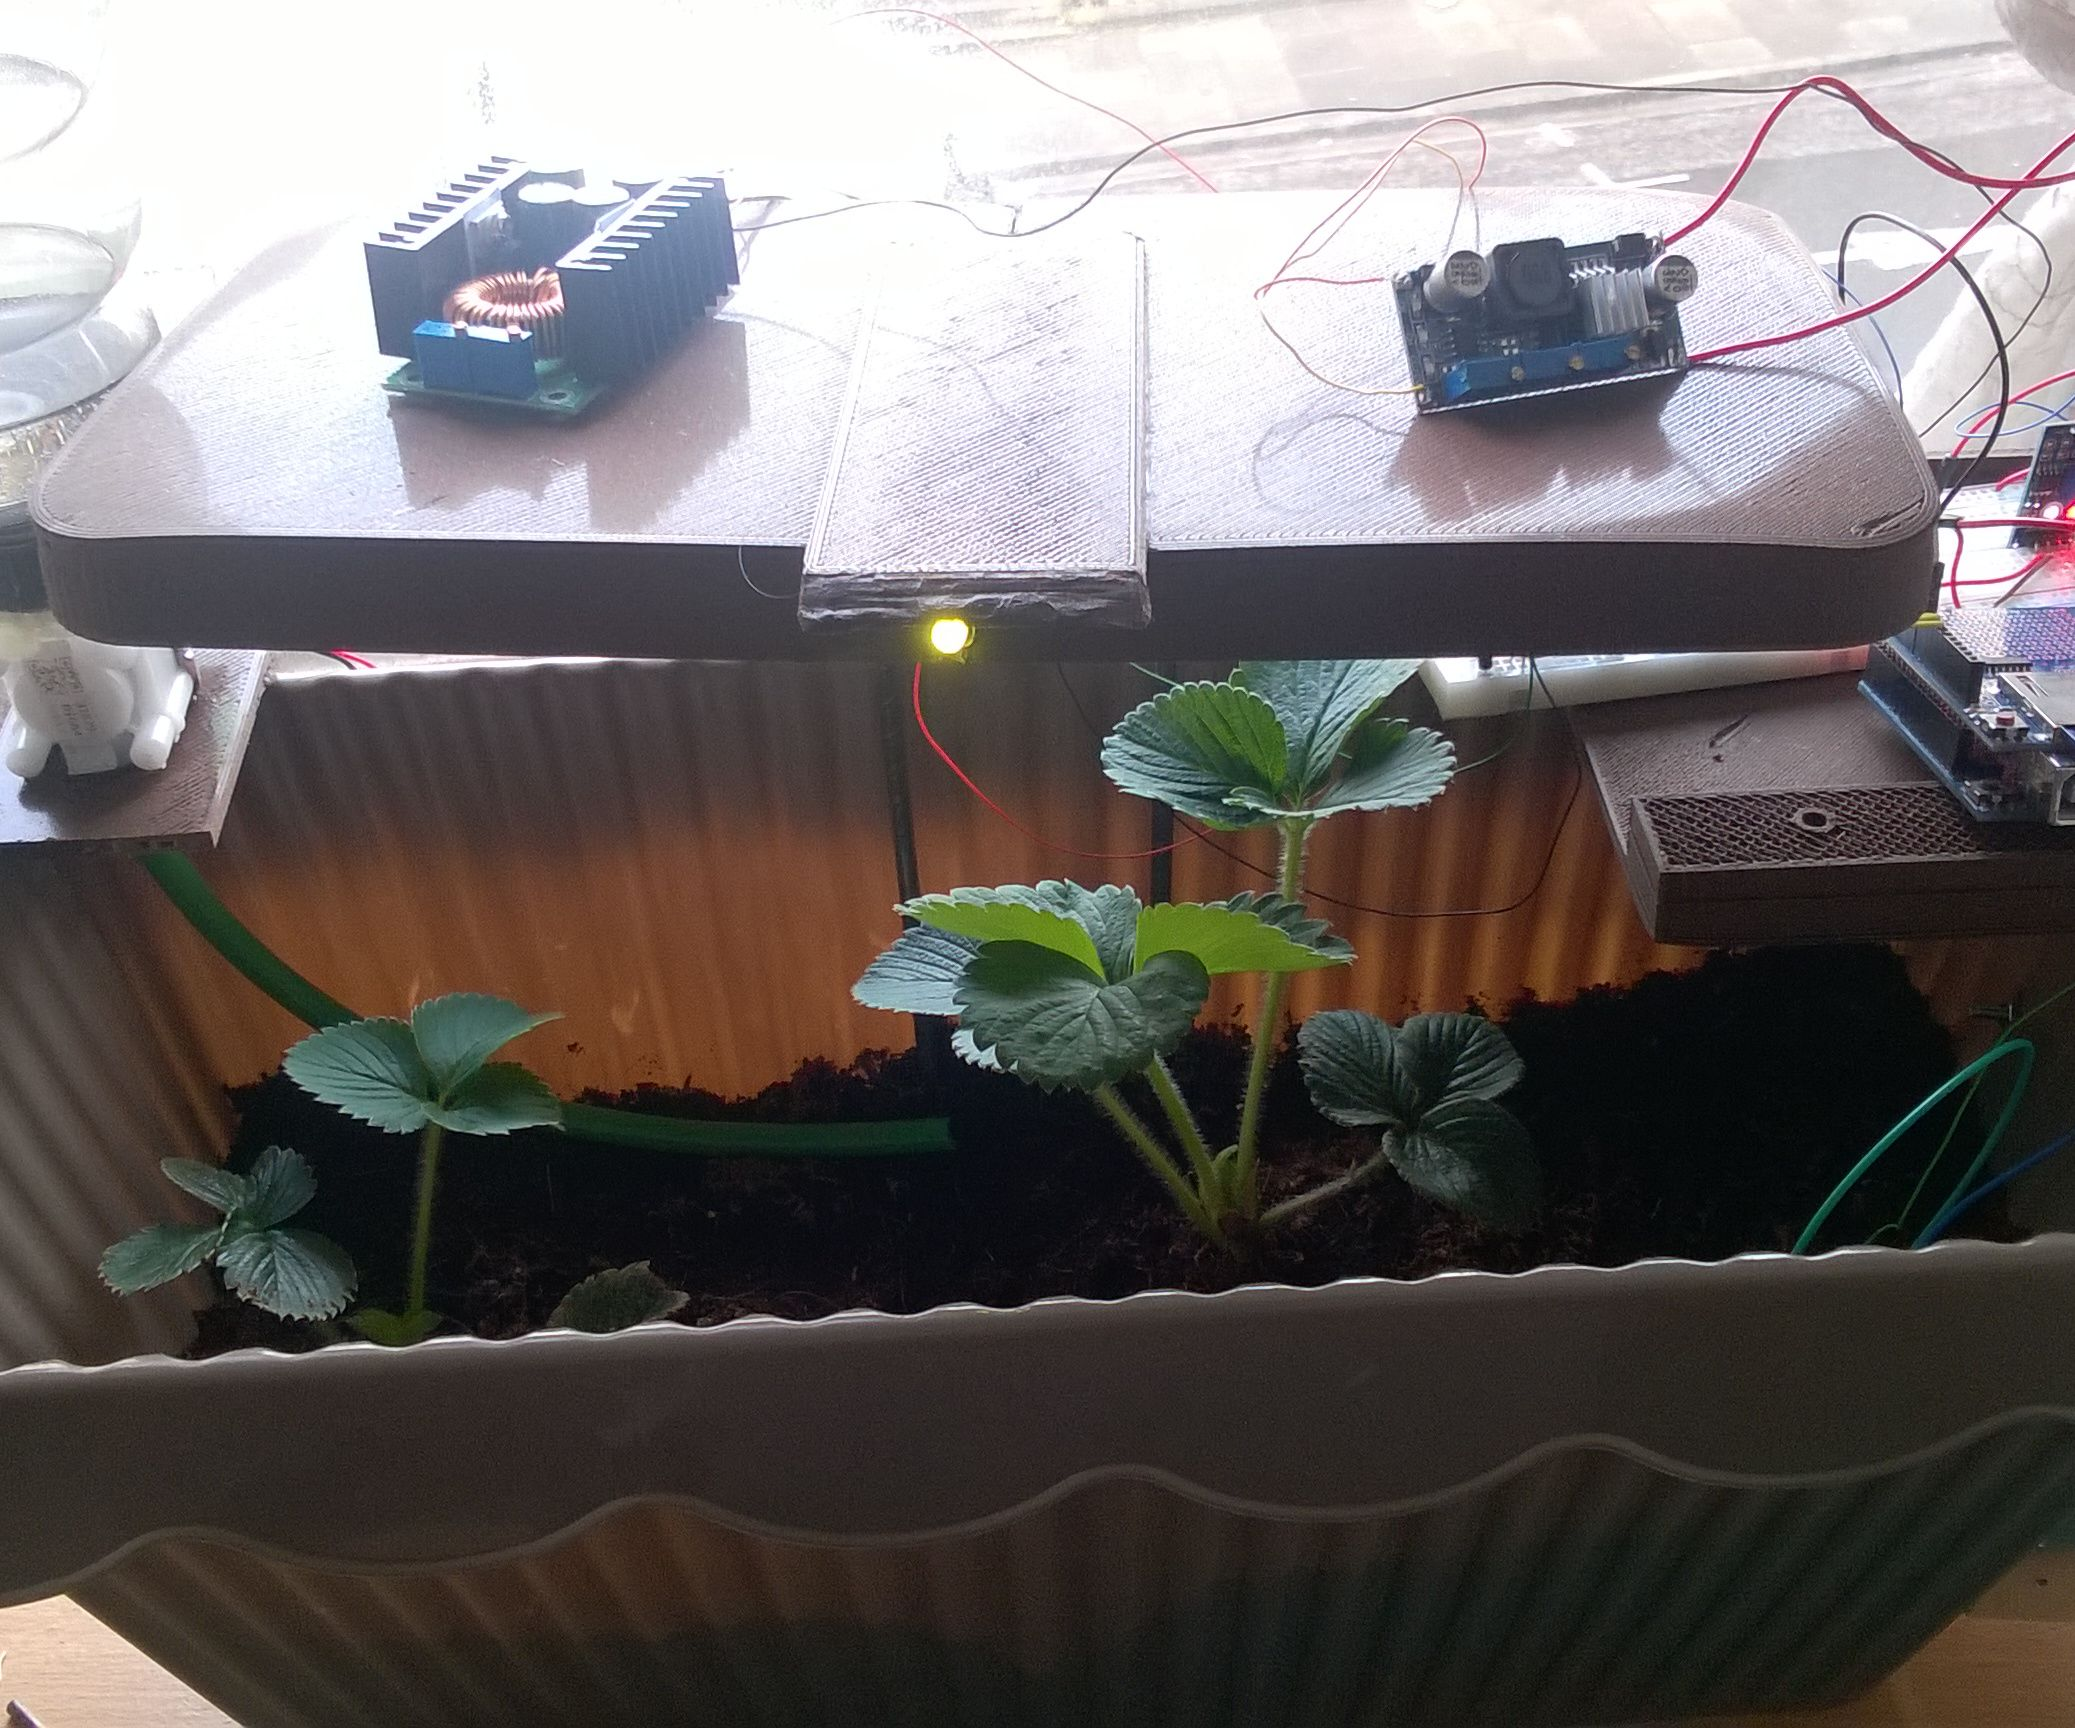 Automated Plants Watering and Lighting System